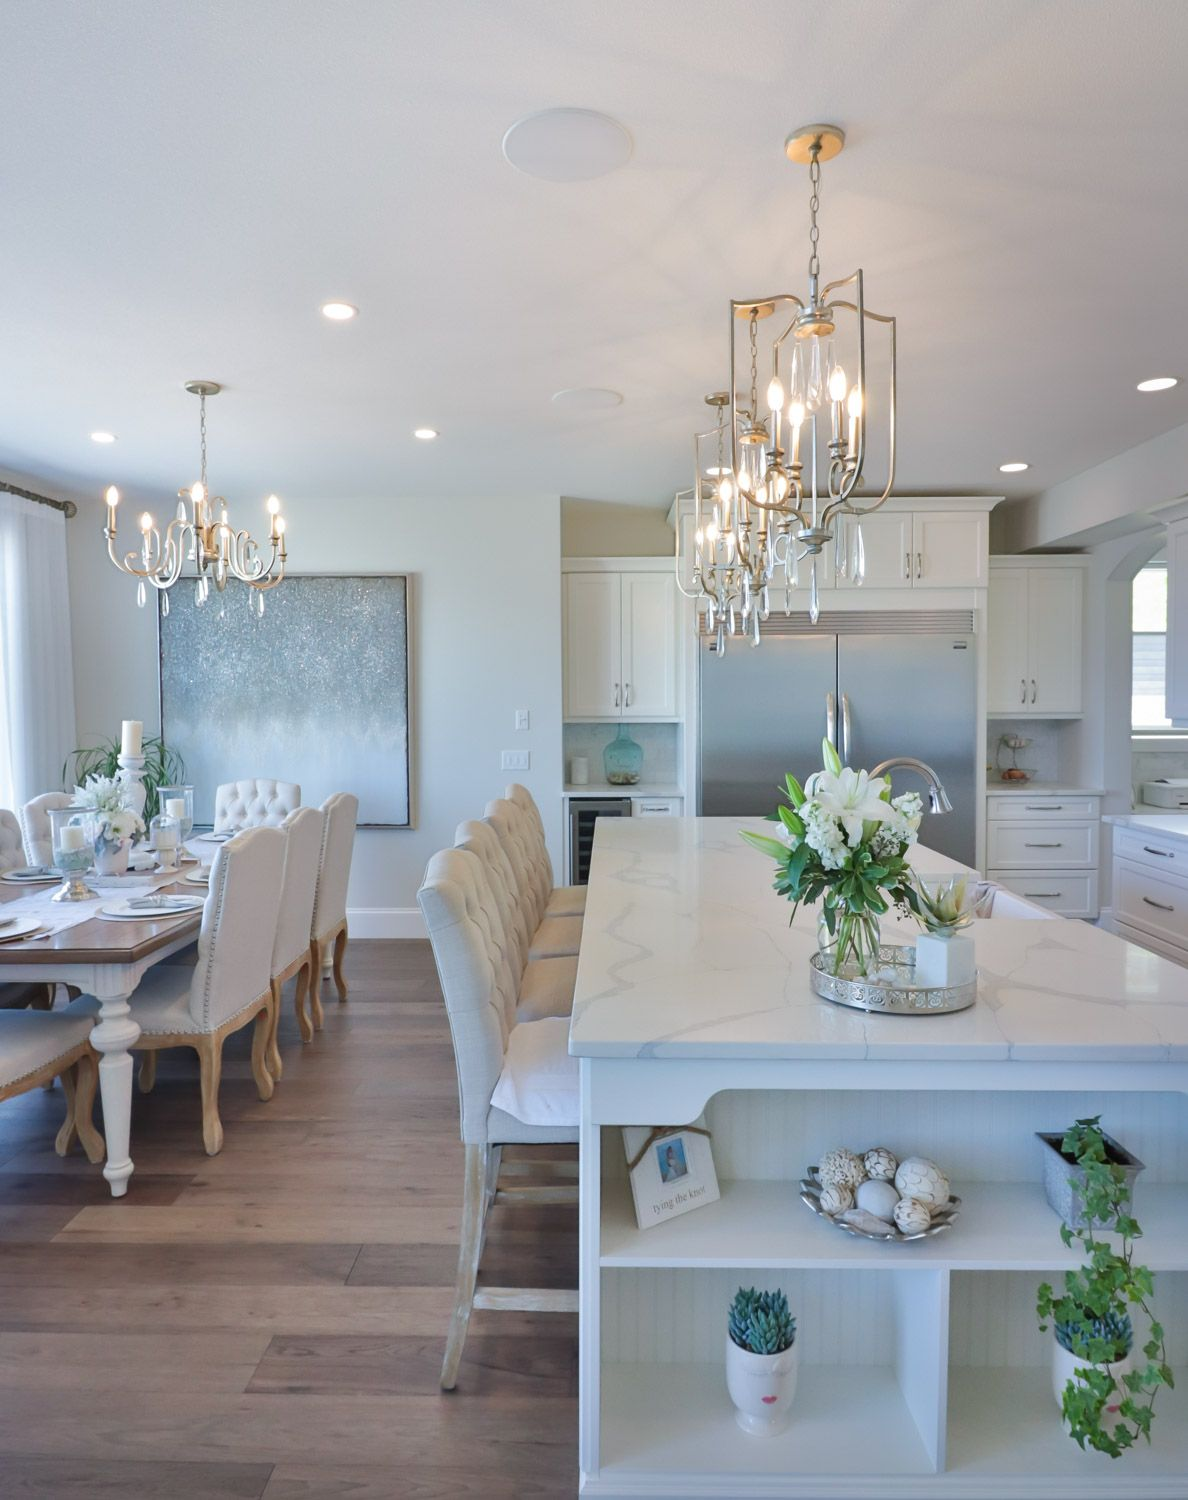 Three pendants over kitchen island and complimentary chandelier ...